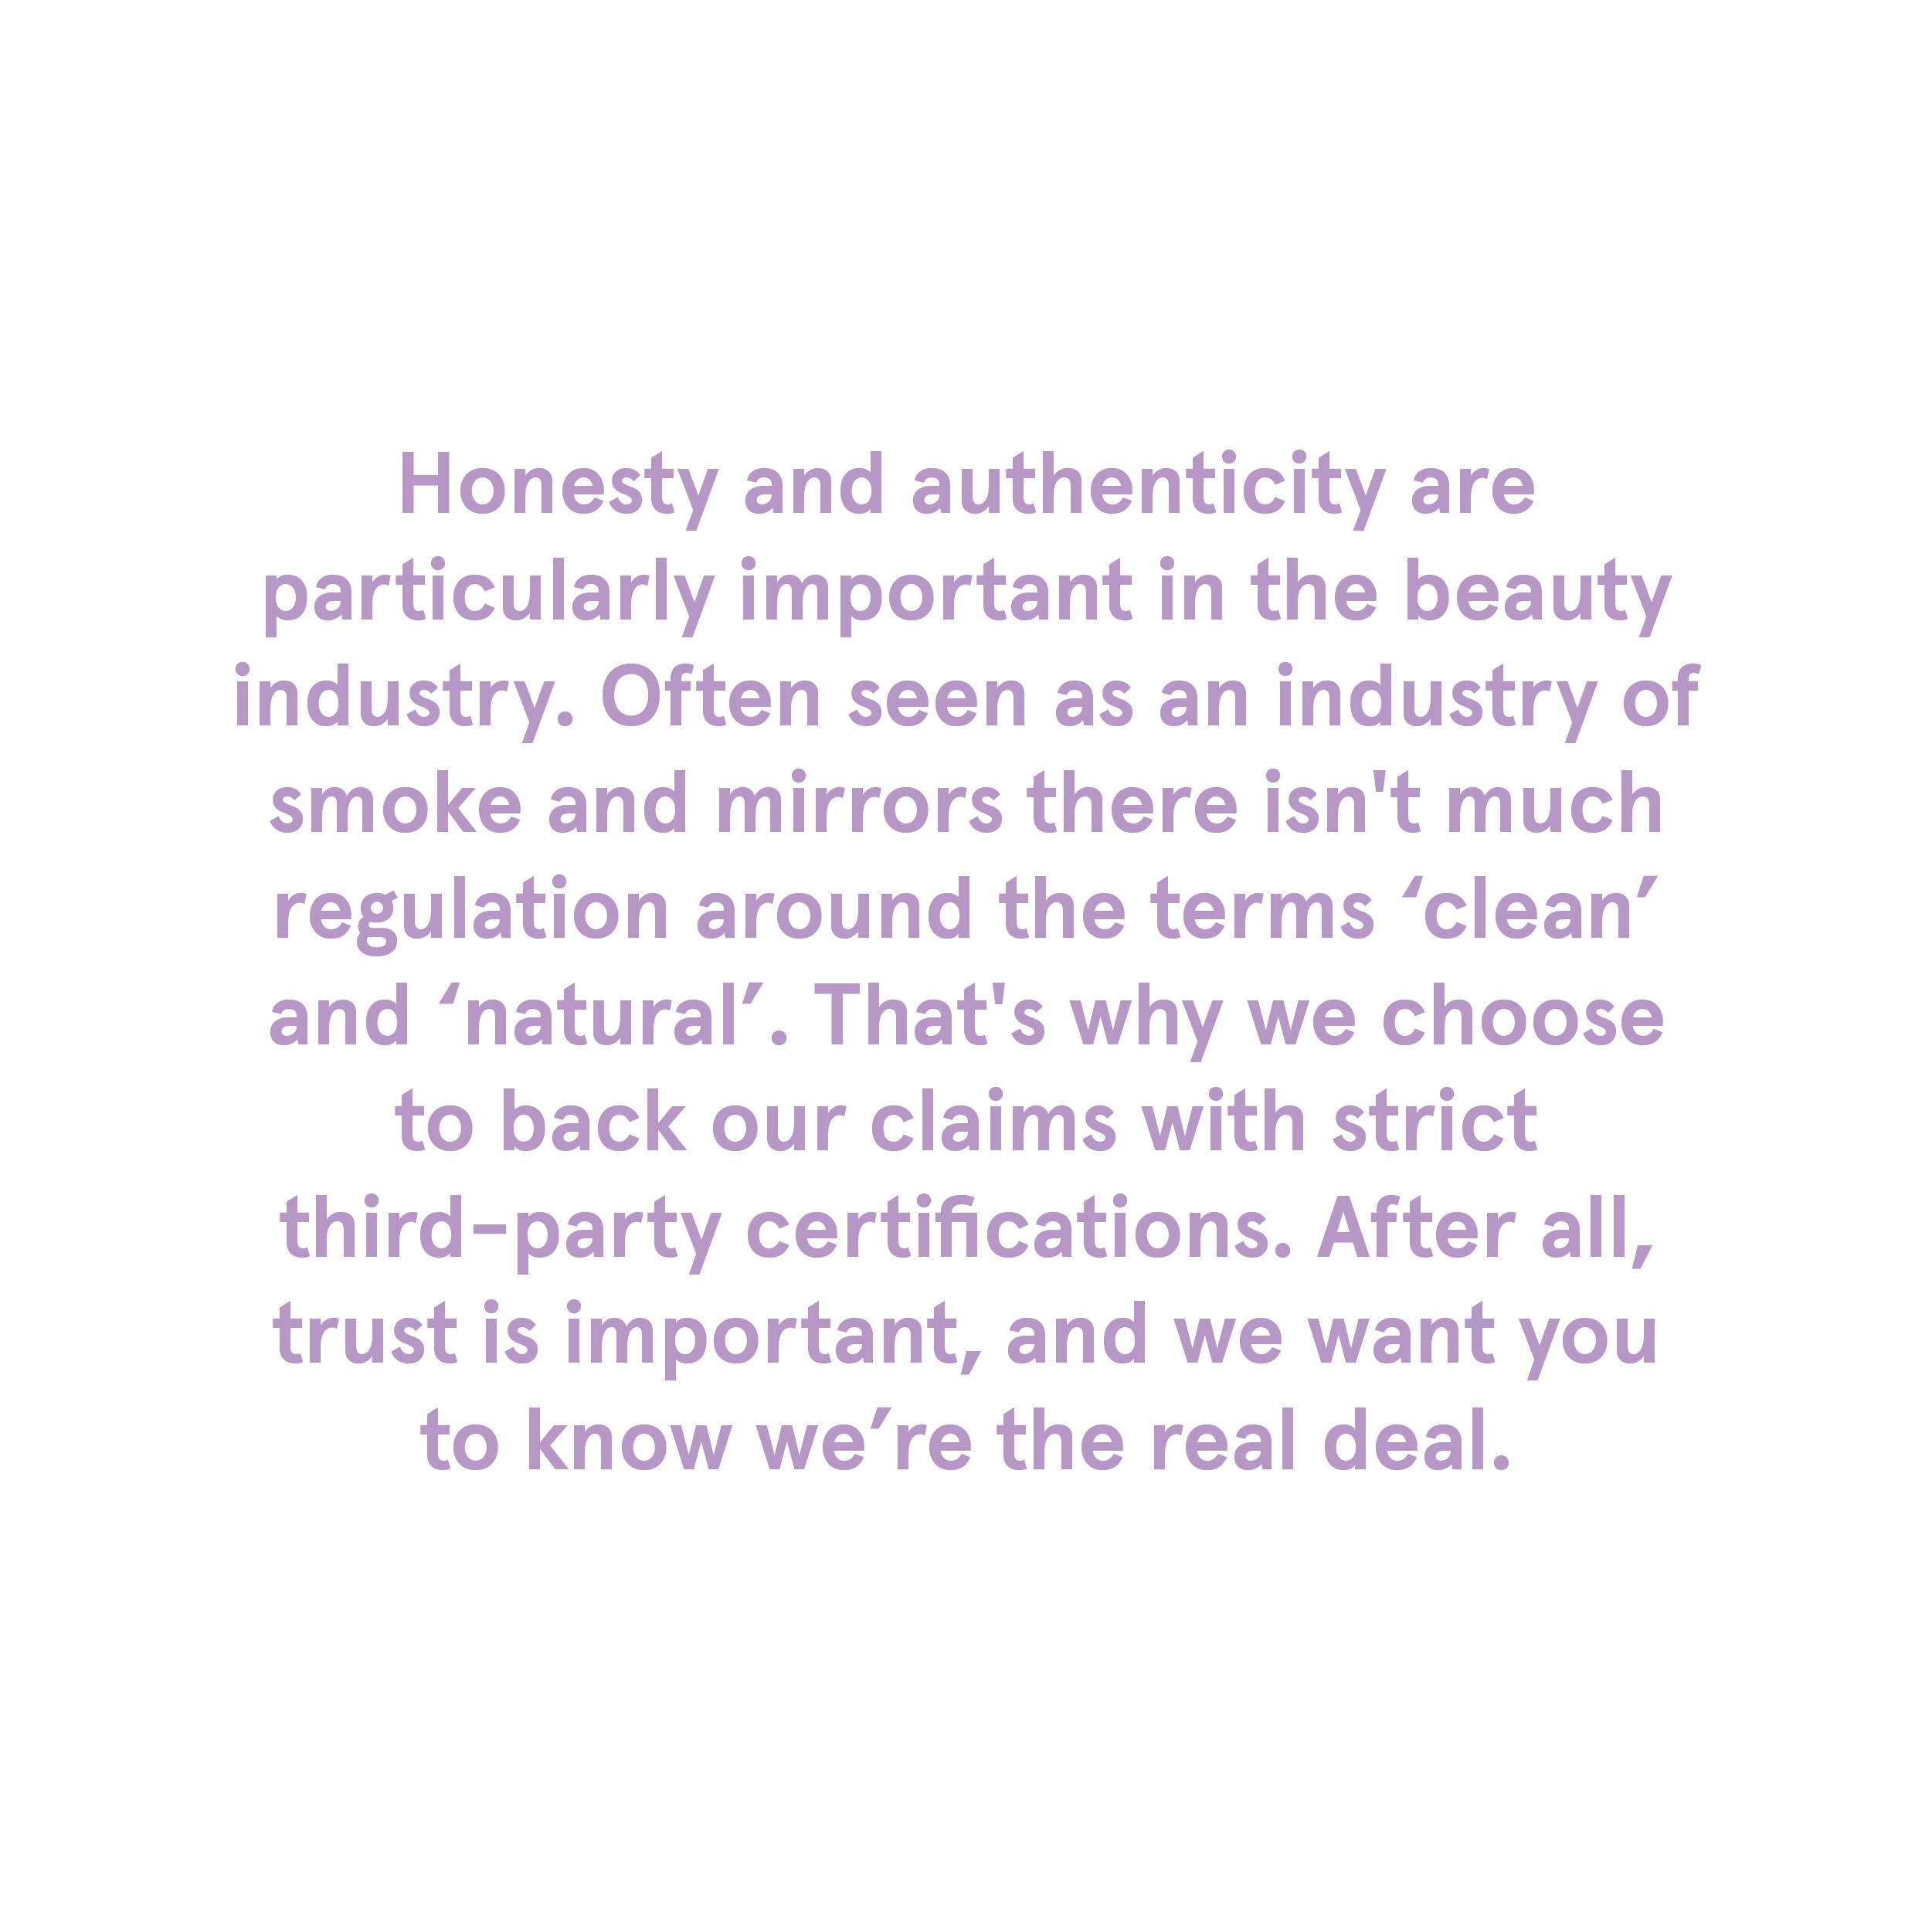 Sub-heading:  We Let Our Certifications Do the Talking.  Copy: We know that trust is built over time and we love putting in the extra effort in to earn it from our customers. That's why we've chosen to hold ourselves accountable by using strict third party accrediation bodies NATRUE and BioGro to certify that our products are truly clean and natural.   NATRUE certification guarantees that our range is natural and BioGro guarantees that our oils are Organic.   After all, trust is important, and we want you to know we're the real deal.